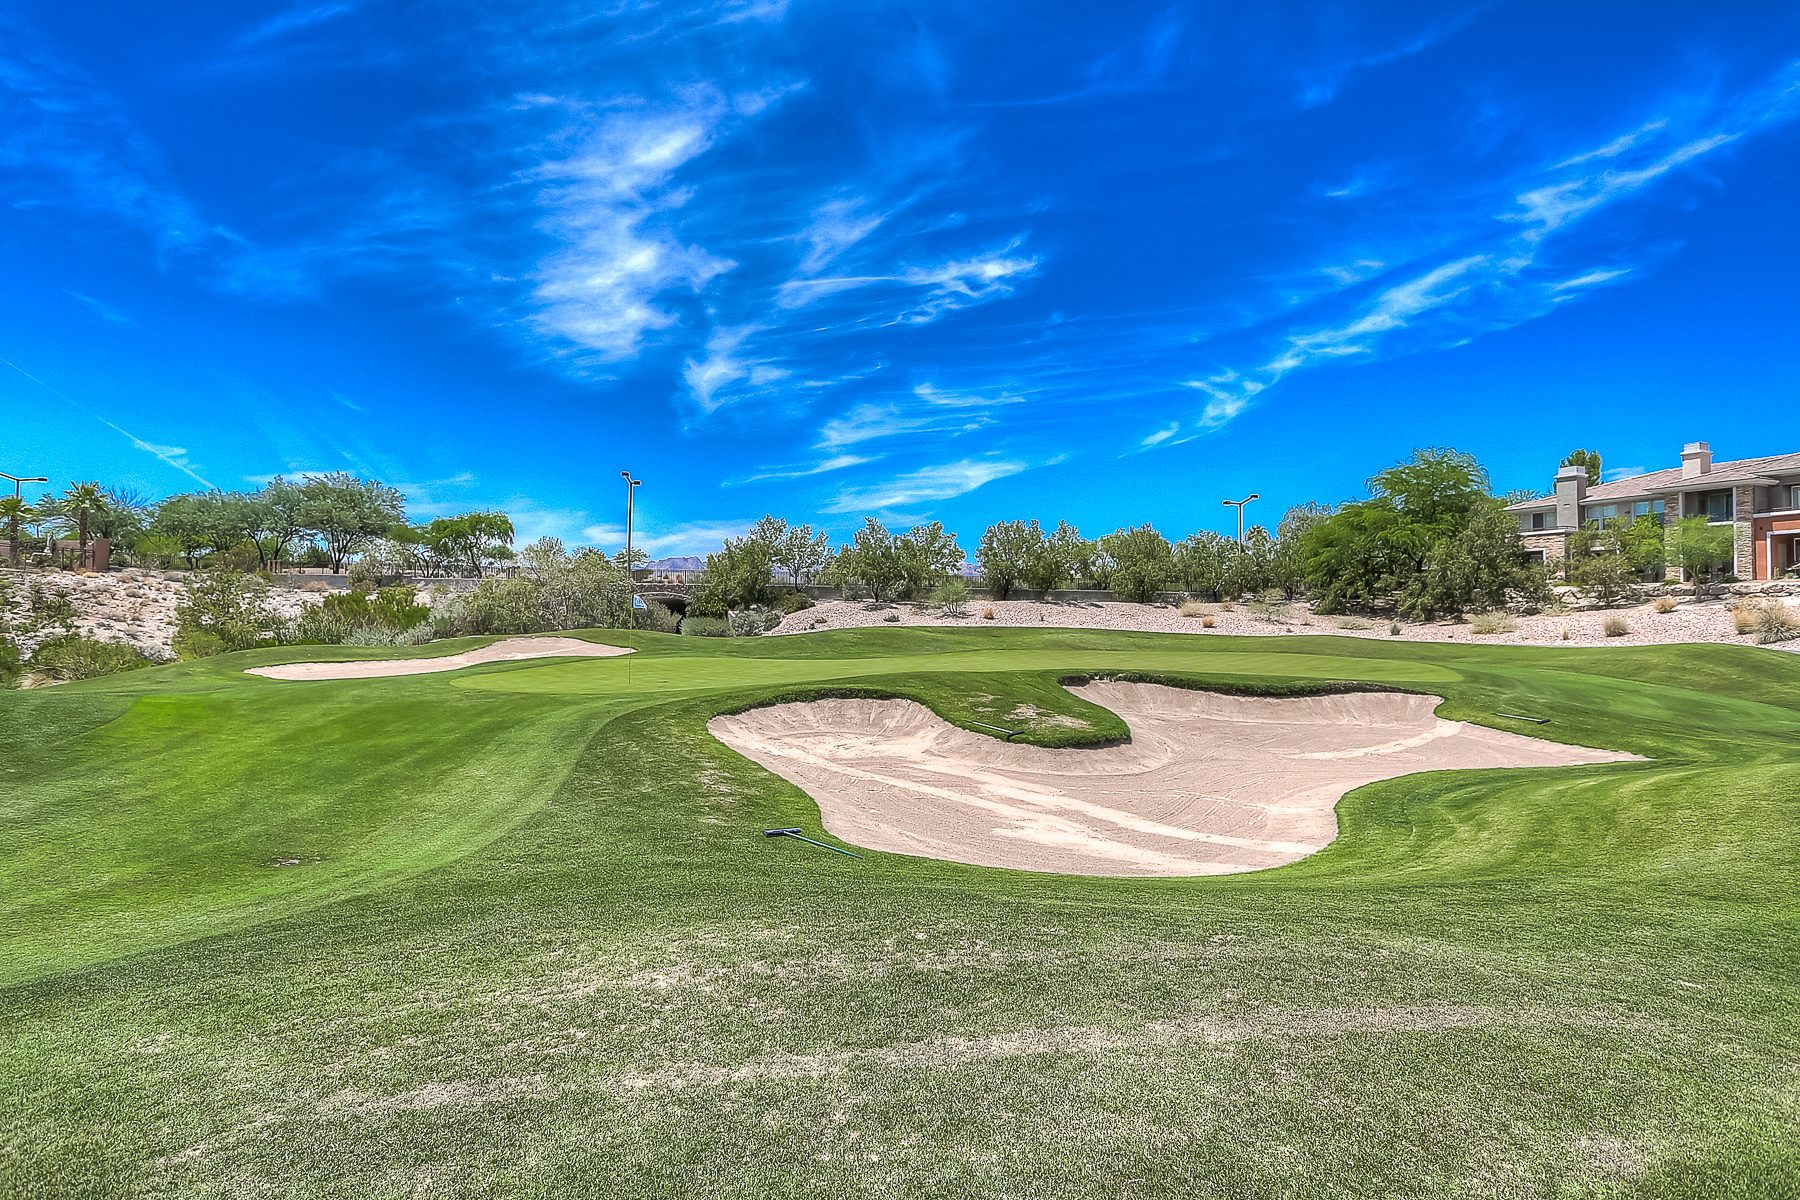 05 summerlin community parks